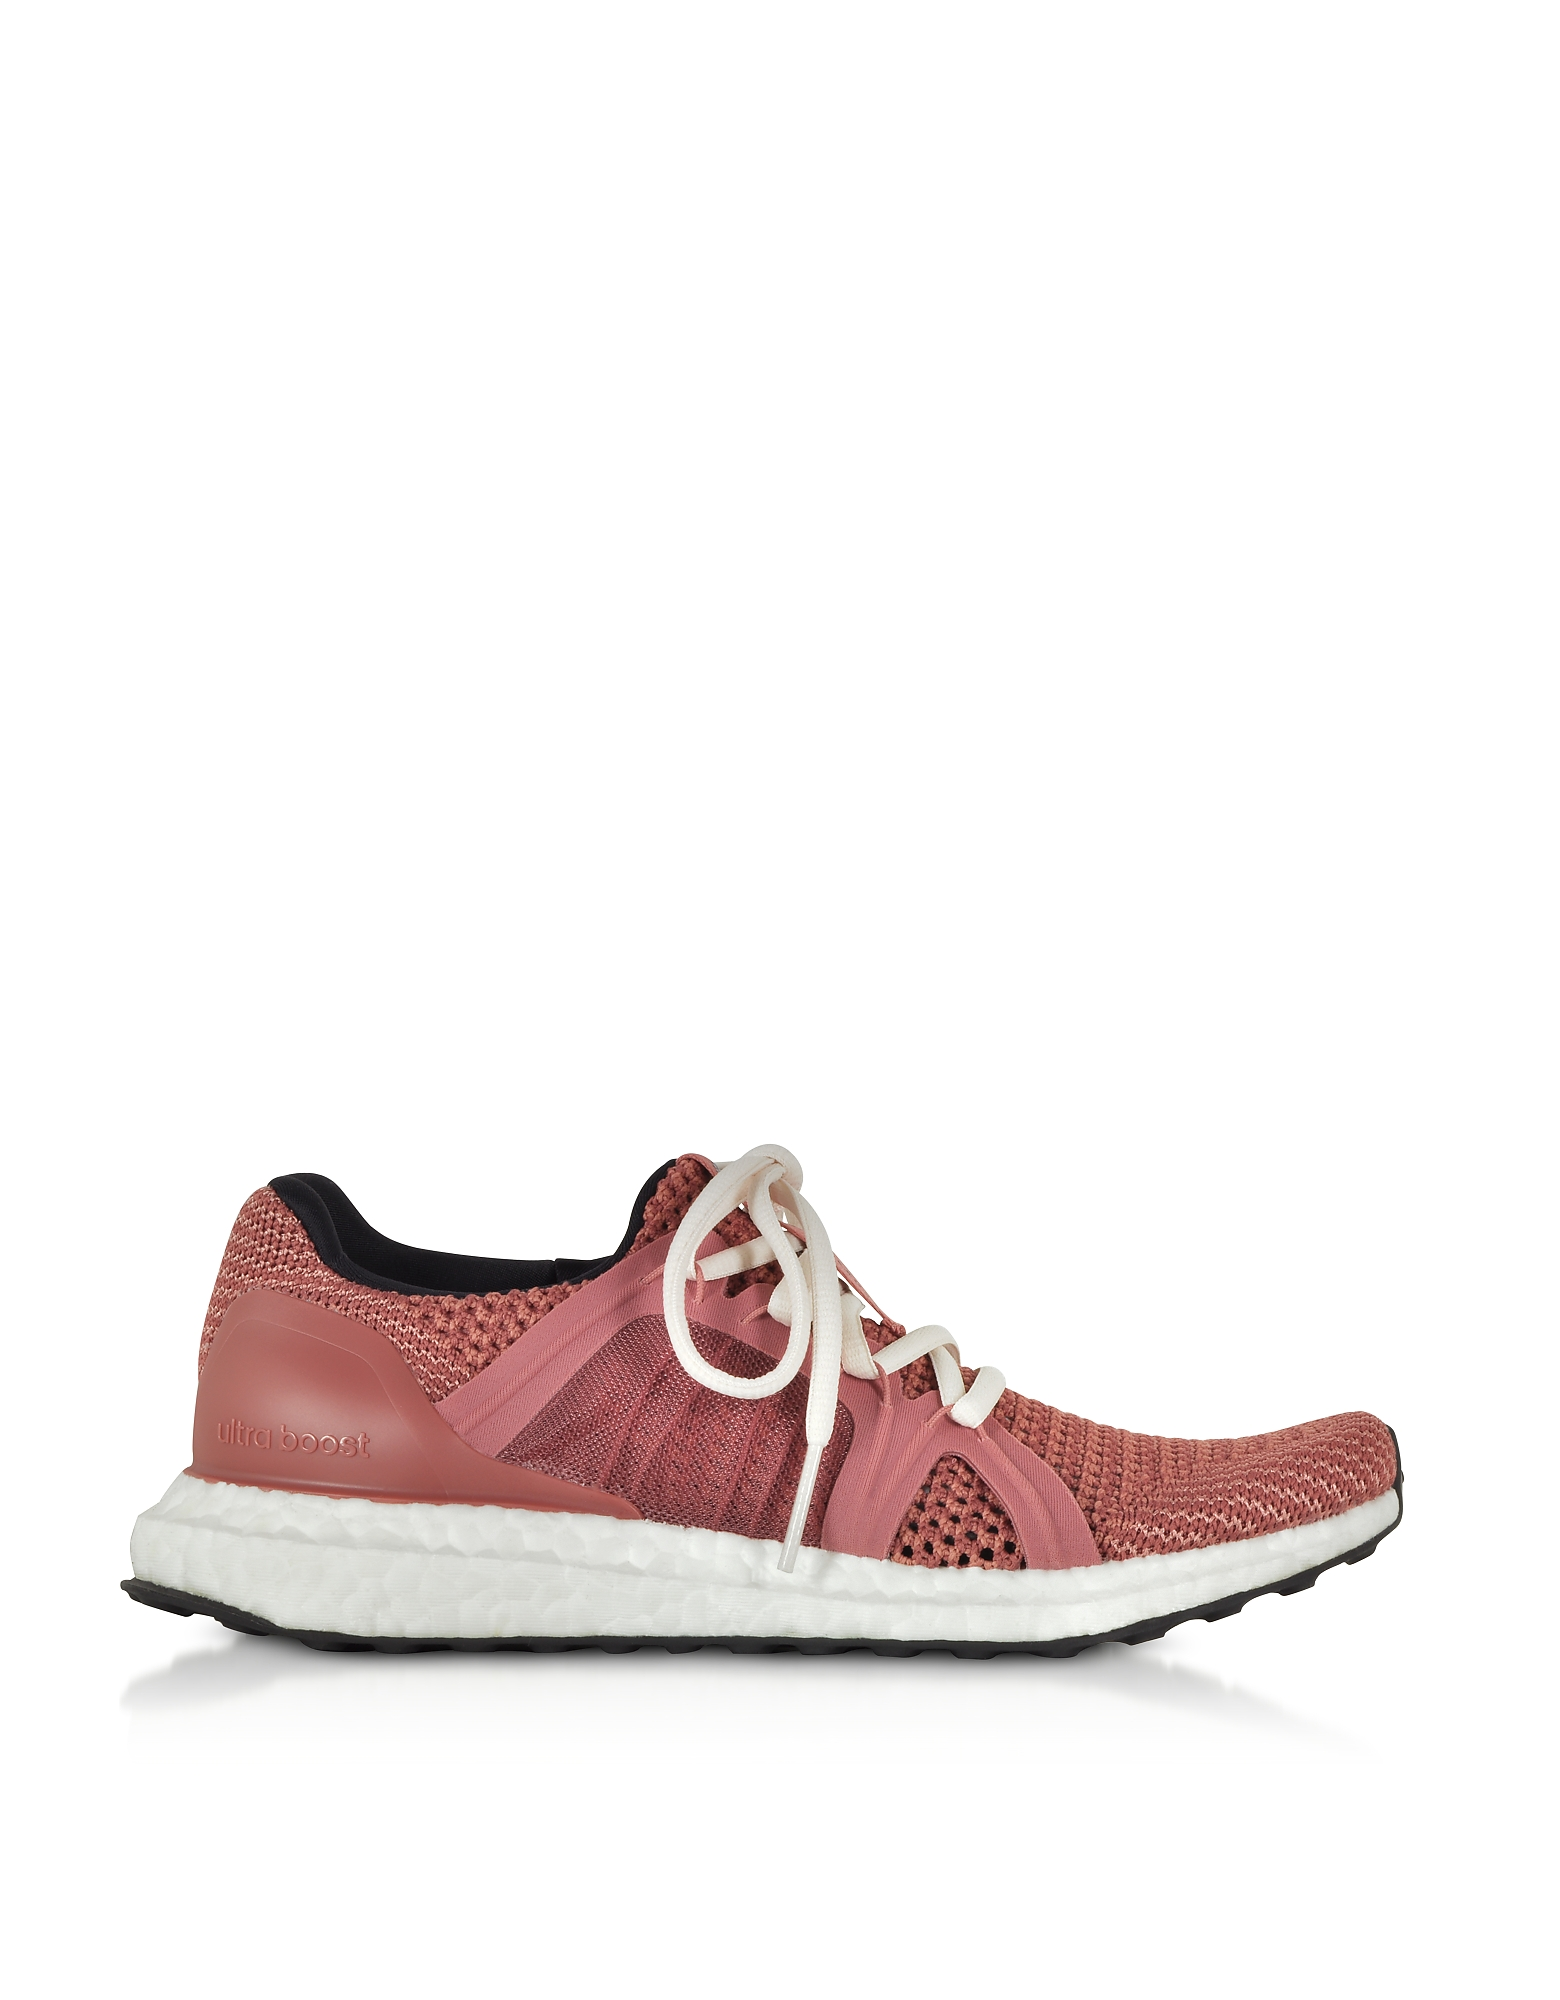 Adidas Stella McCartney Designer Shoes, UltraBOOST X Raw Pink Women